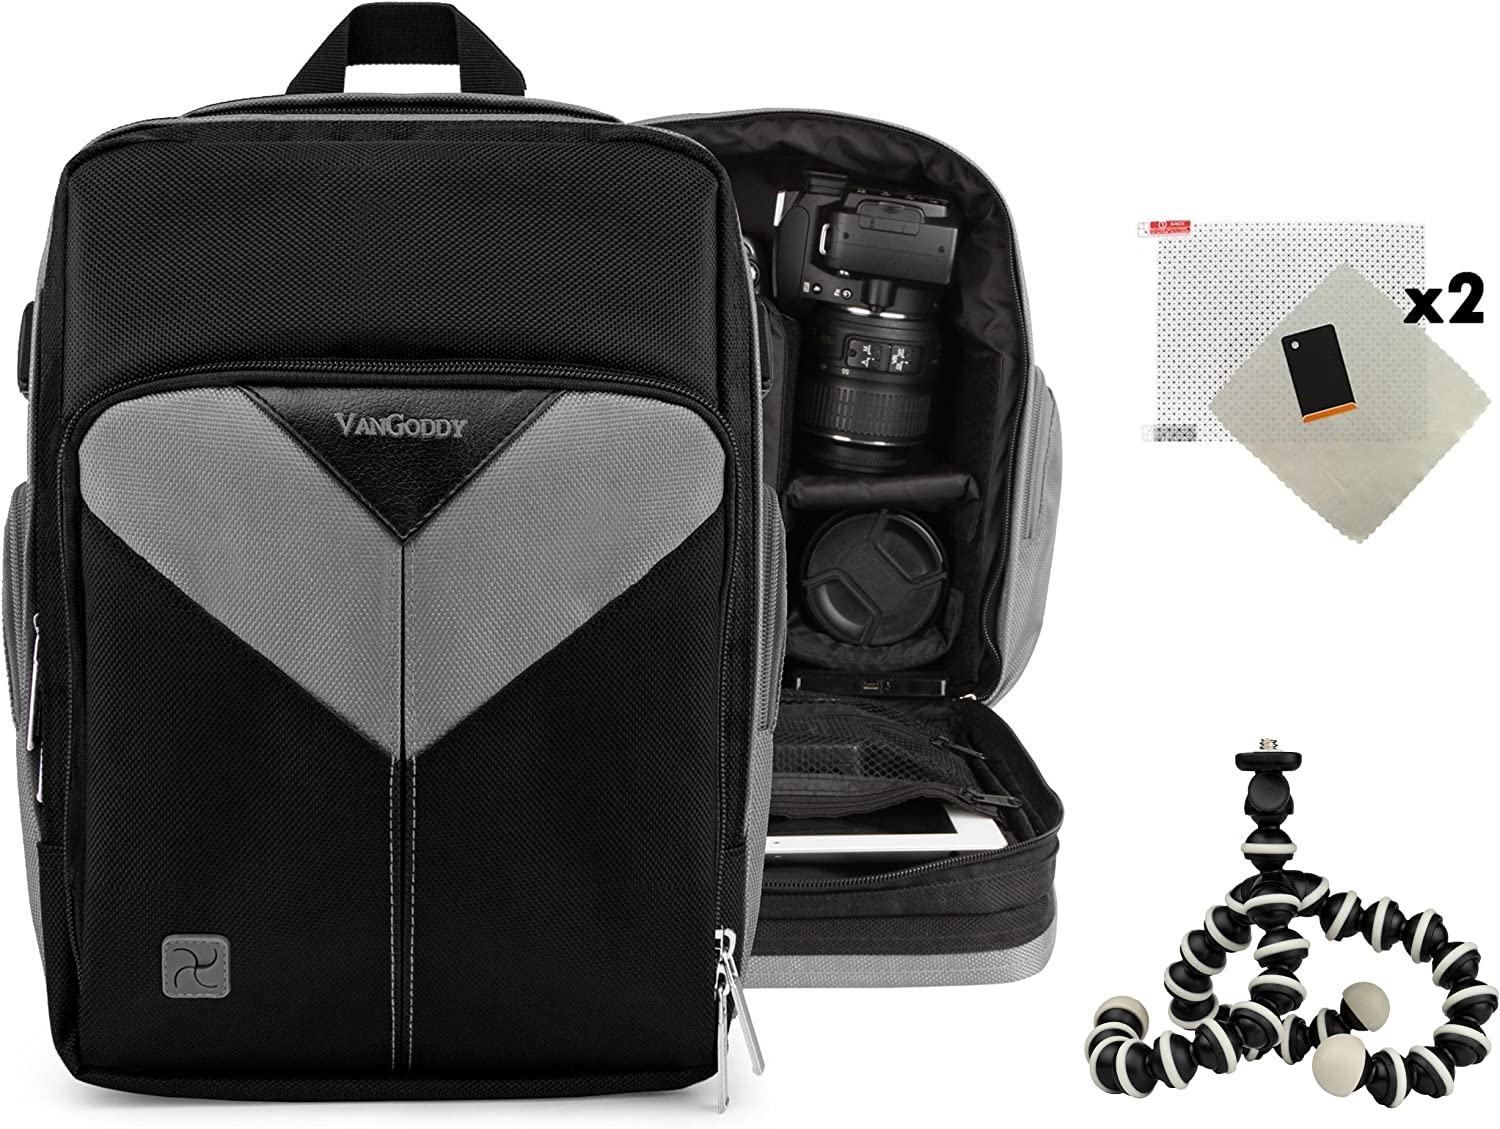 Sparta Backpack Protective Carrying Bag for Canon EOS 40D 400D 450D Digital Rebel XTi Kiss X2 Digital X and Screen Protector and Mini Tripod